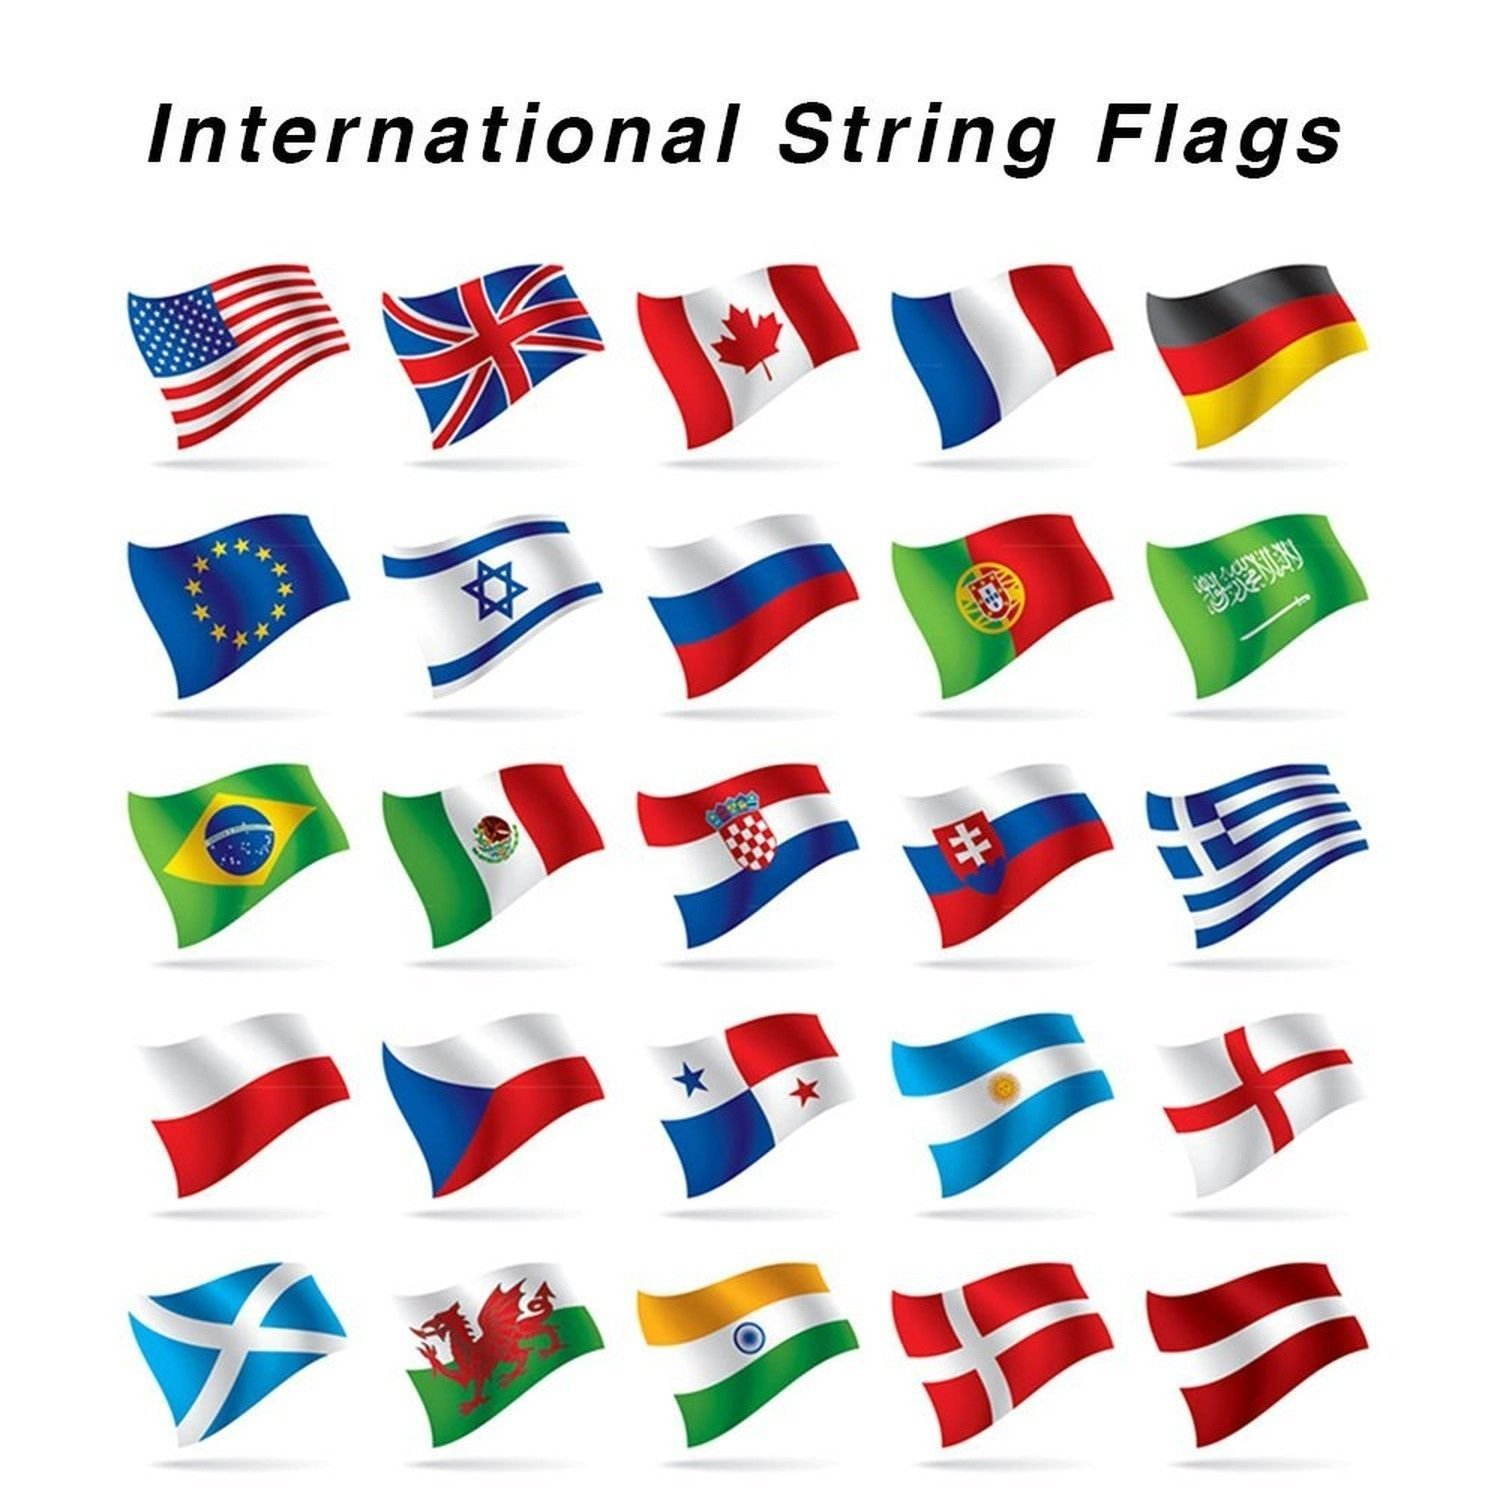 International Country String Flags,PortableFun 32 Countries Flags Pennant Banner For Grand Opening,Olympics,Bar,Party Decorations,Sports Clubs,Restaurants,Festival,etc - 30 Feet 8.2''x5.5''(LxW)